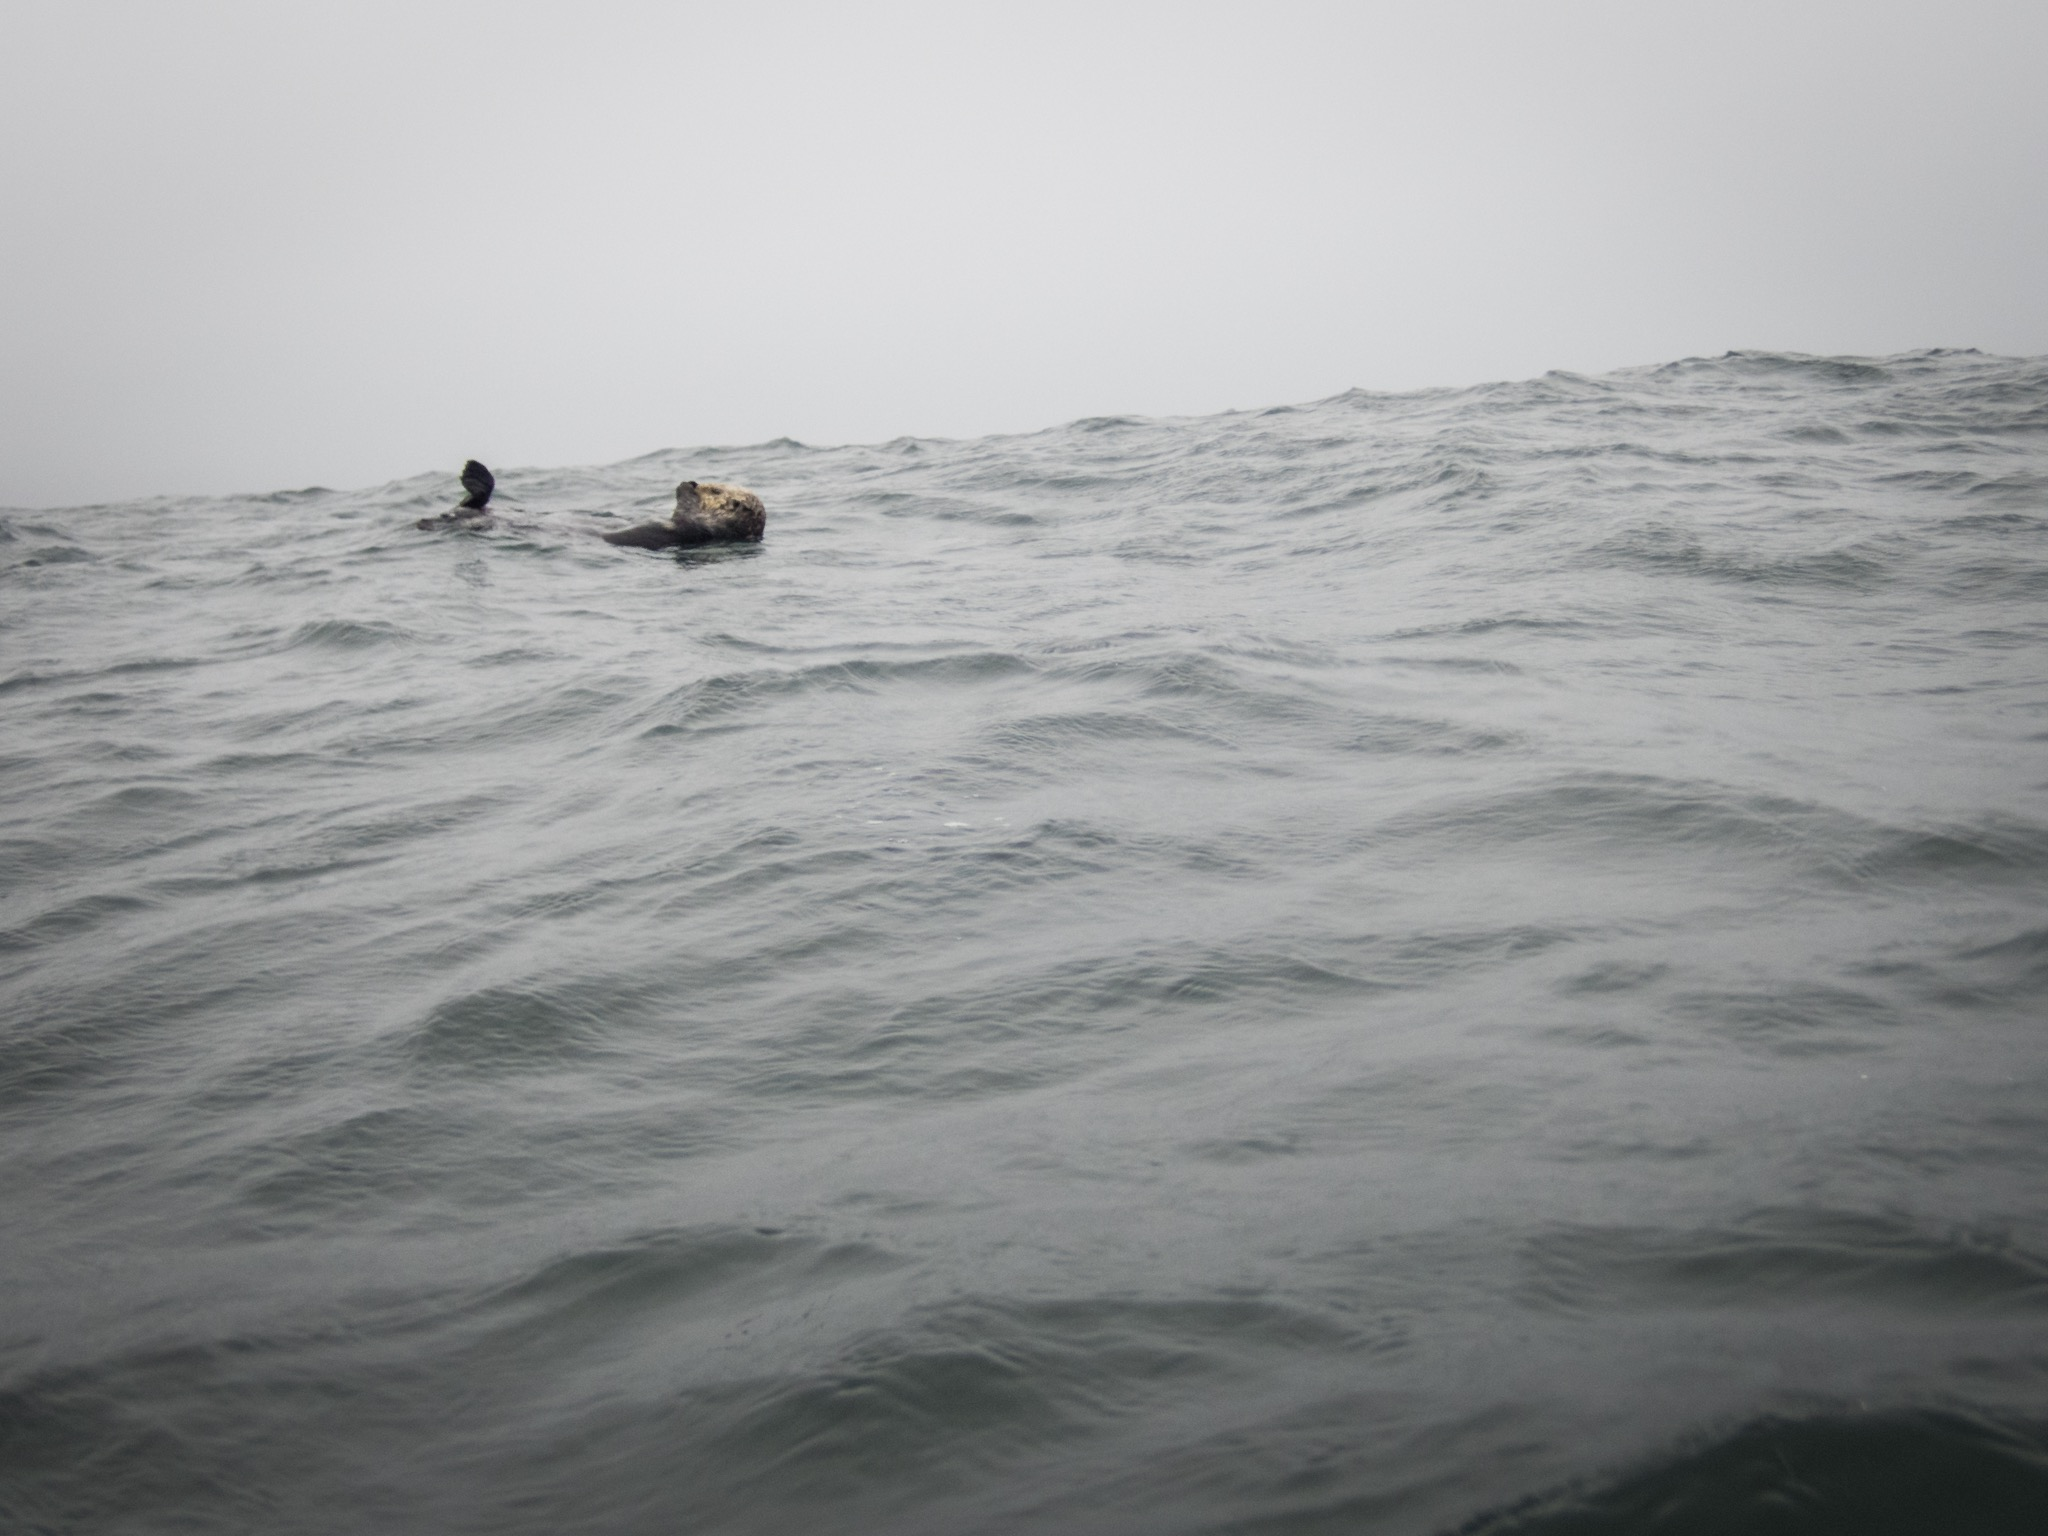 Sea otter relaxing in the swell near Quatsino Sound.